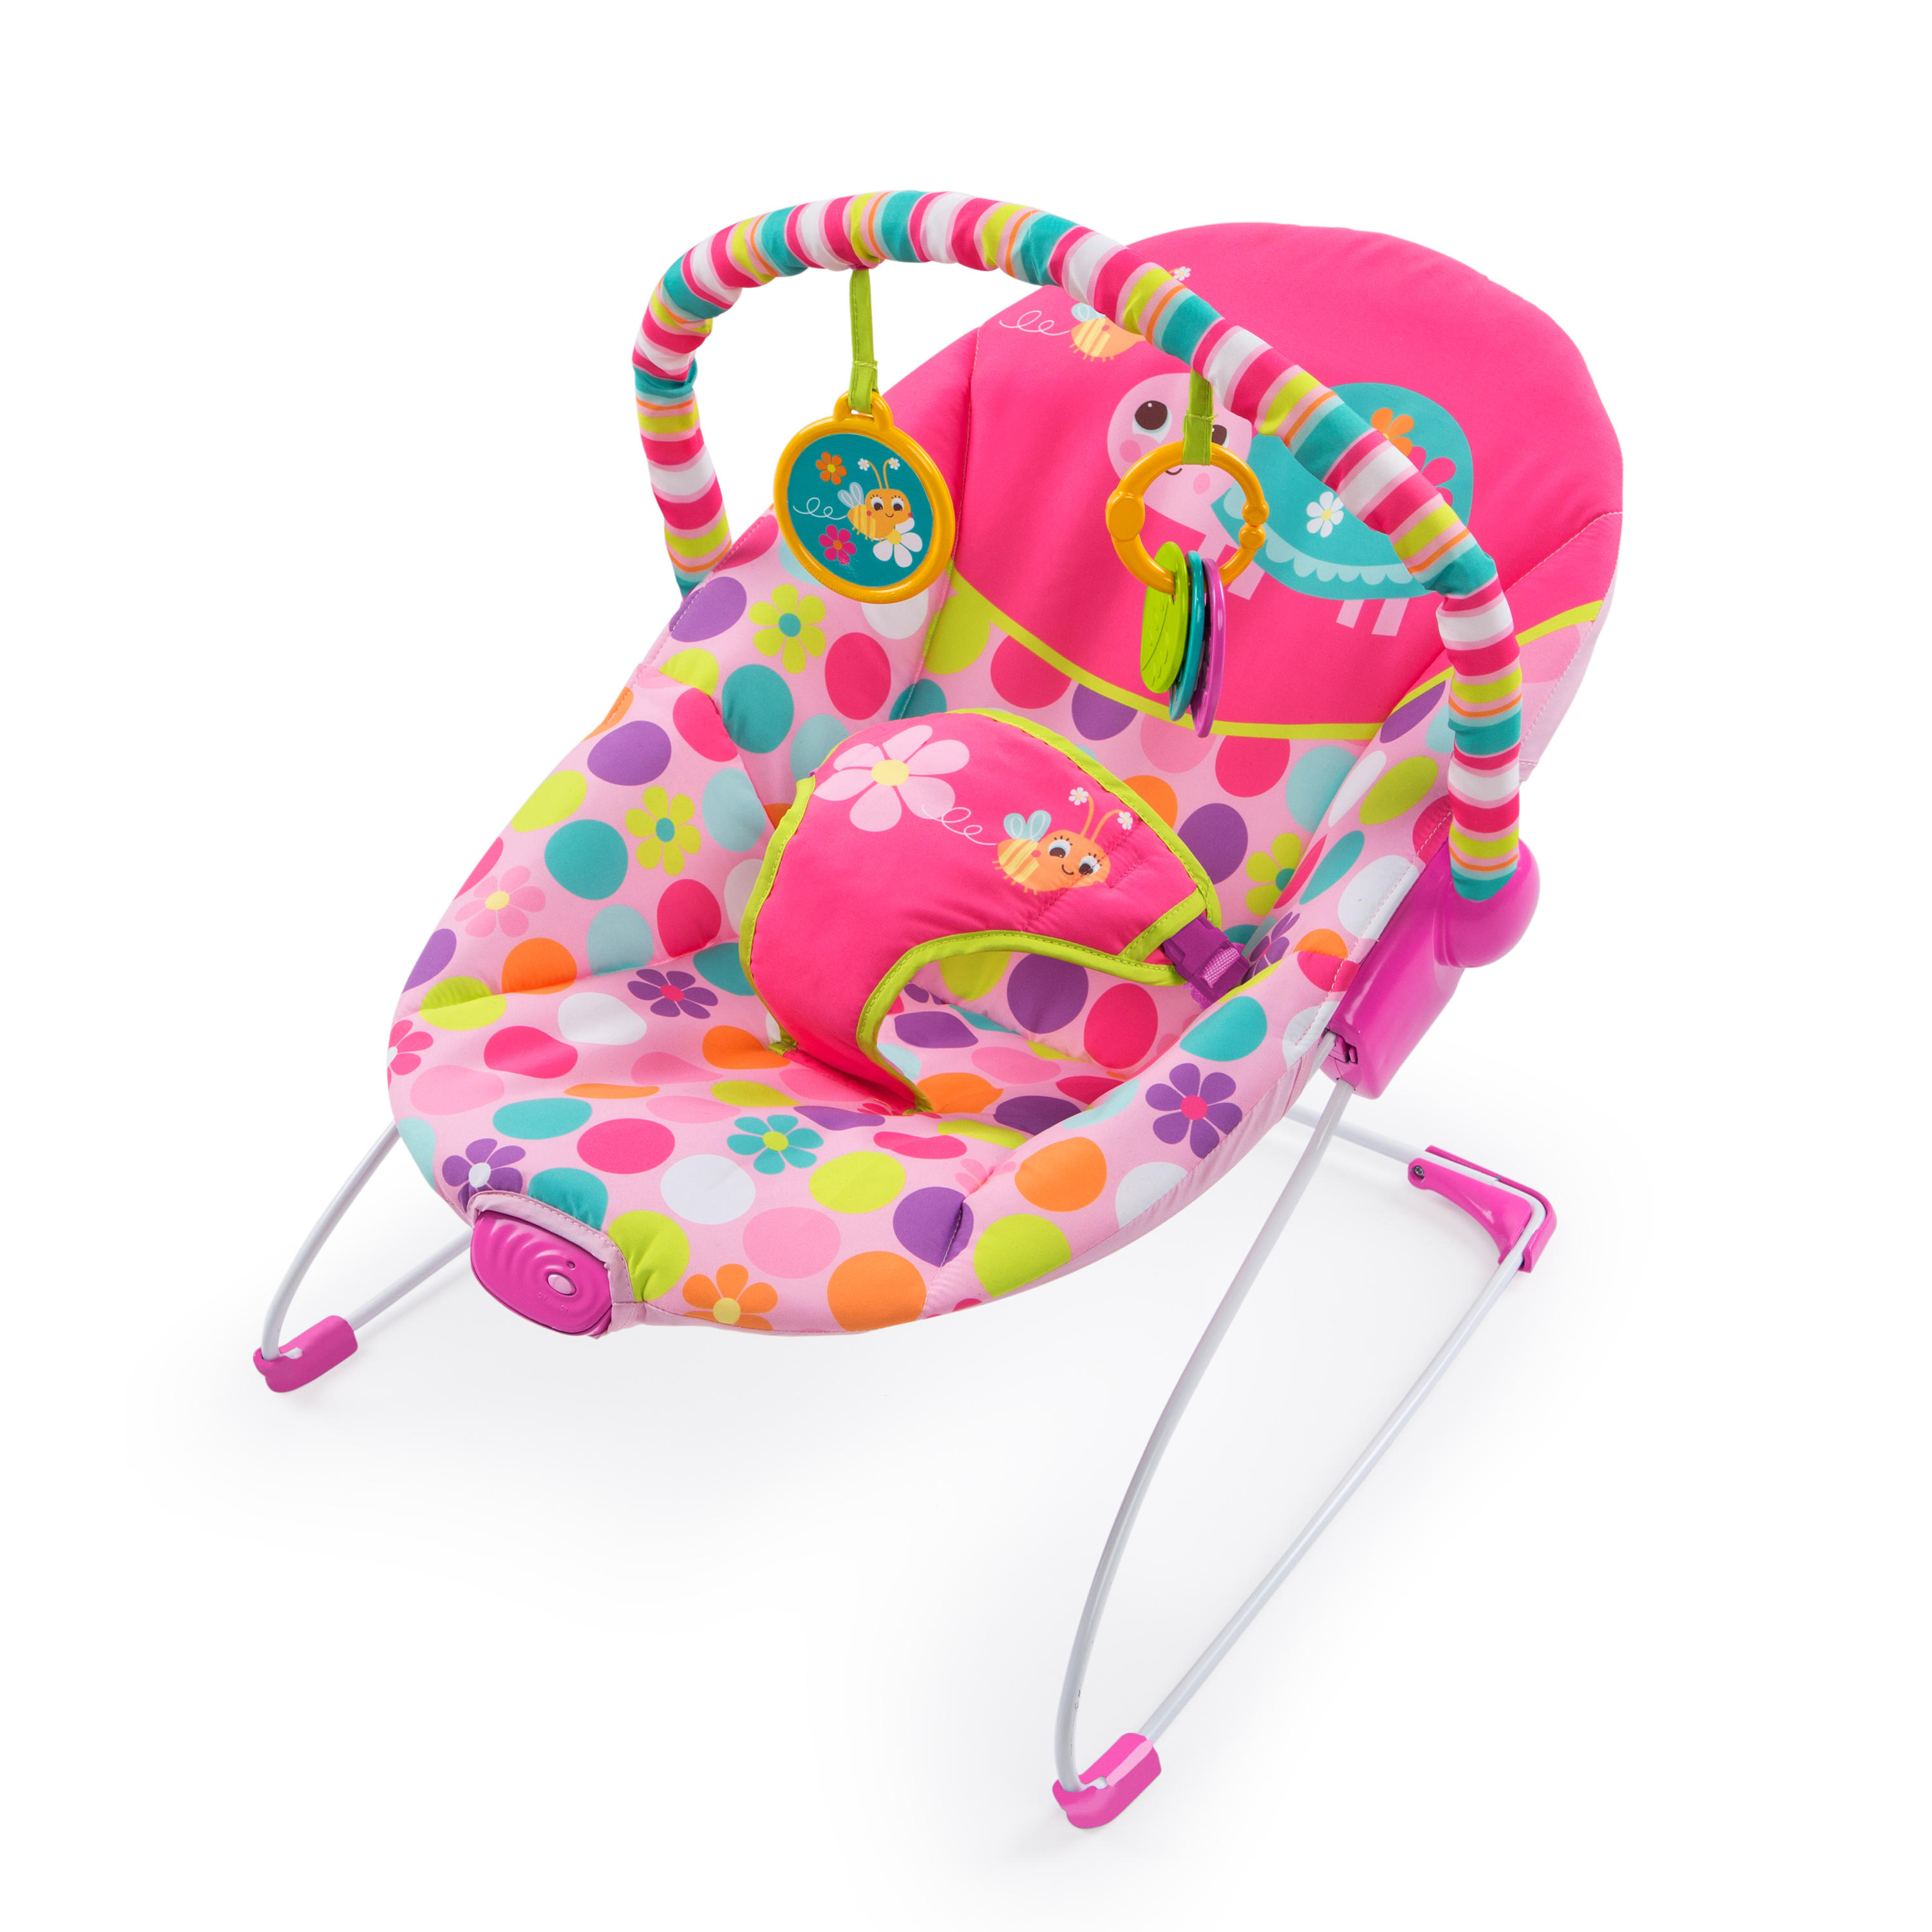 Bright Starts Pretty Pink Safari Bouncer